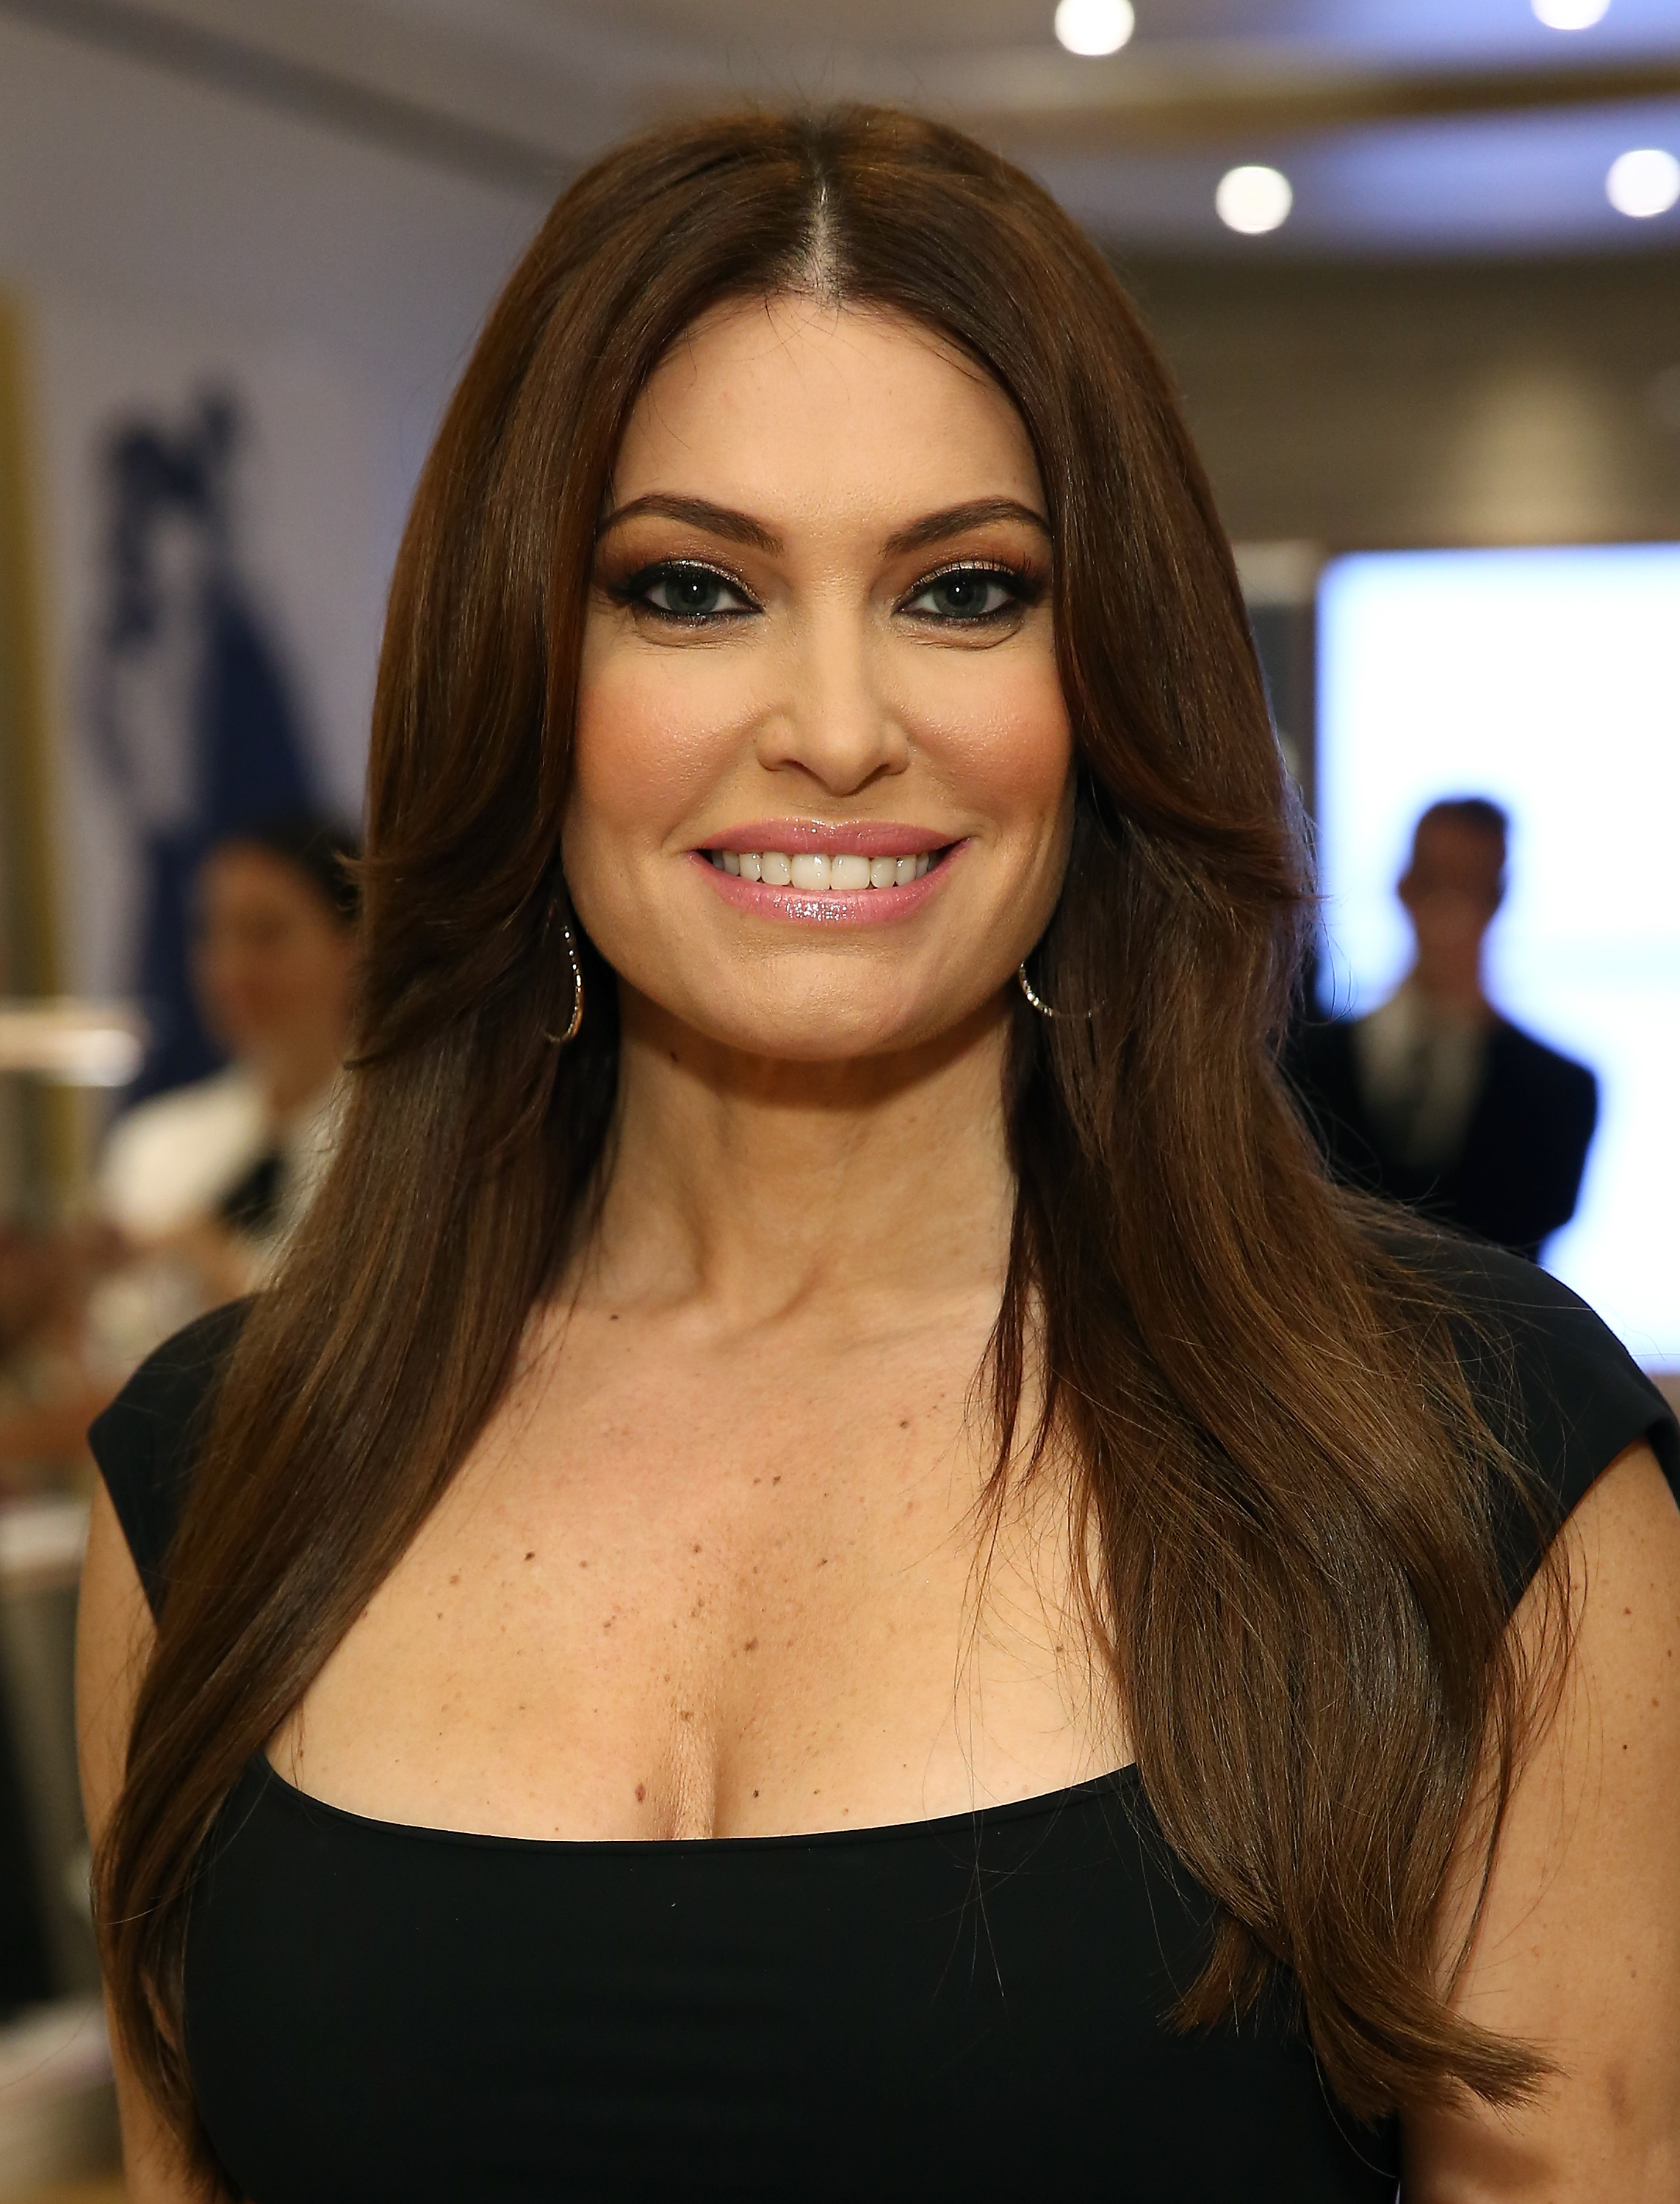 Who Is Kimberly Guilfoyle? Fox News Host Might Replace Sean Spicer As White House Press Secretary